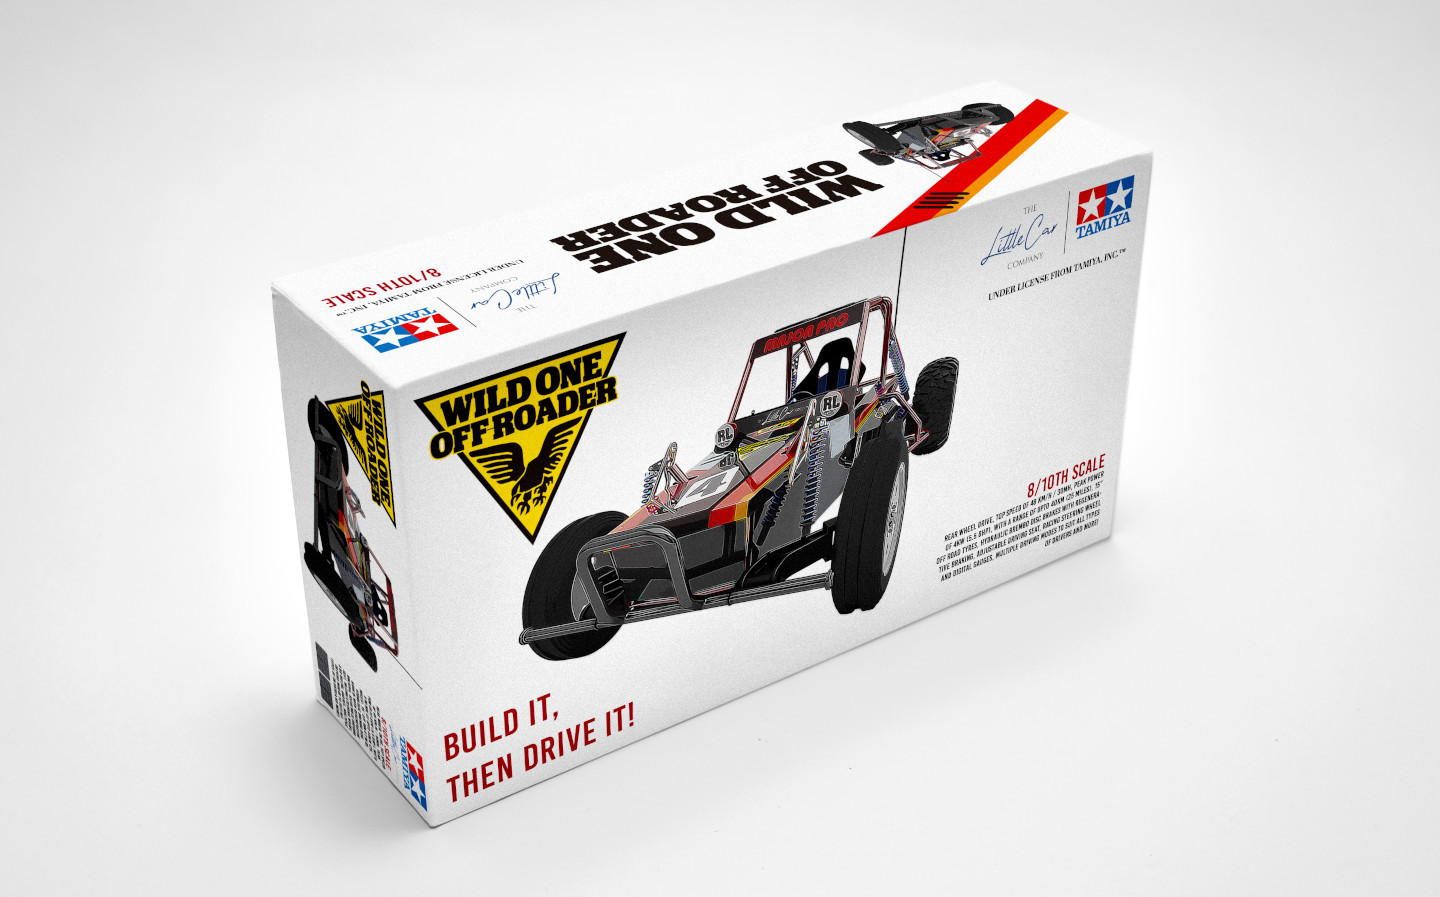 Remote controlled car company Tamiya reveals driveable Wild One model